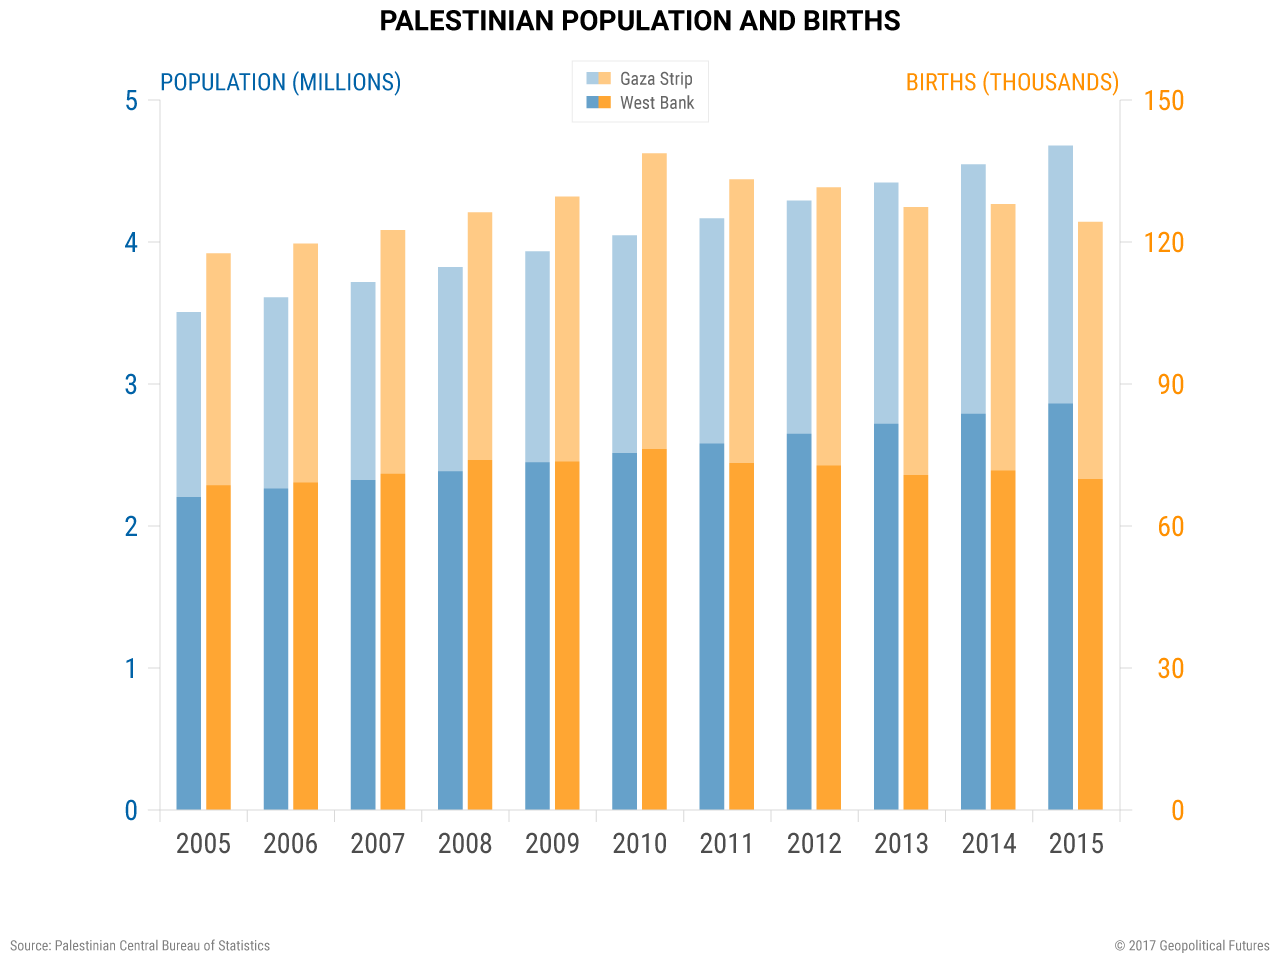 Palestinian Population and Births